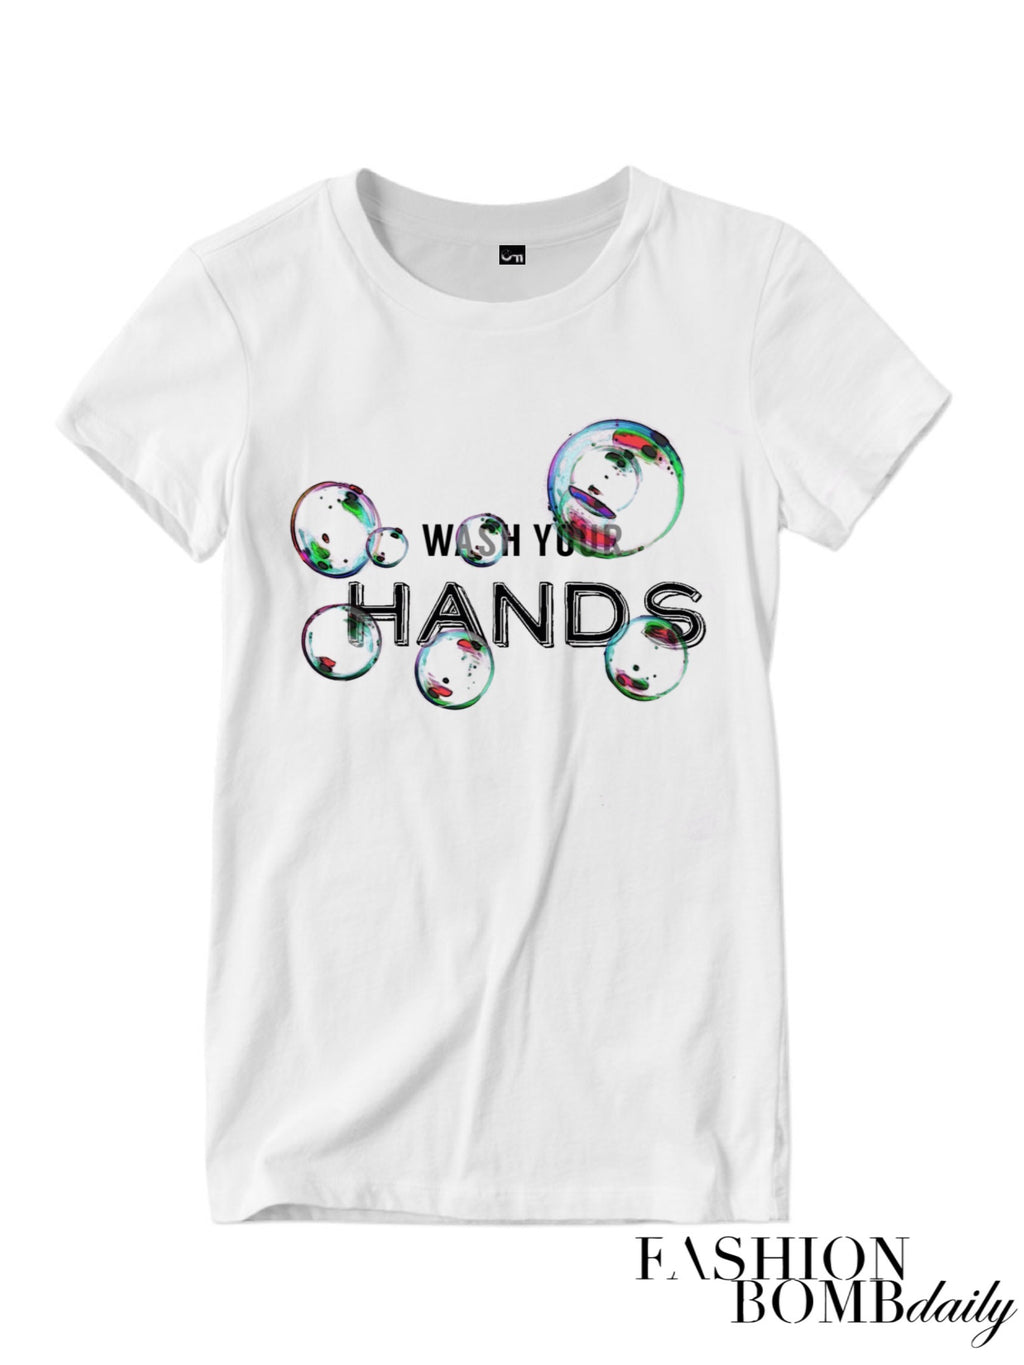 Keylows Wash Your Hands T-Shirt